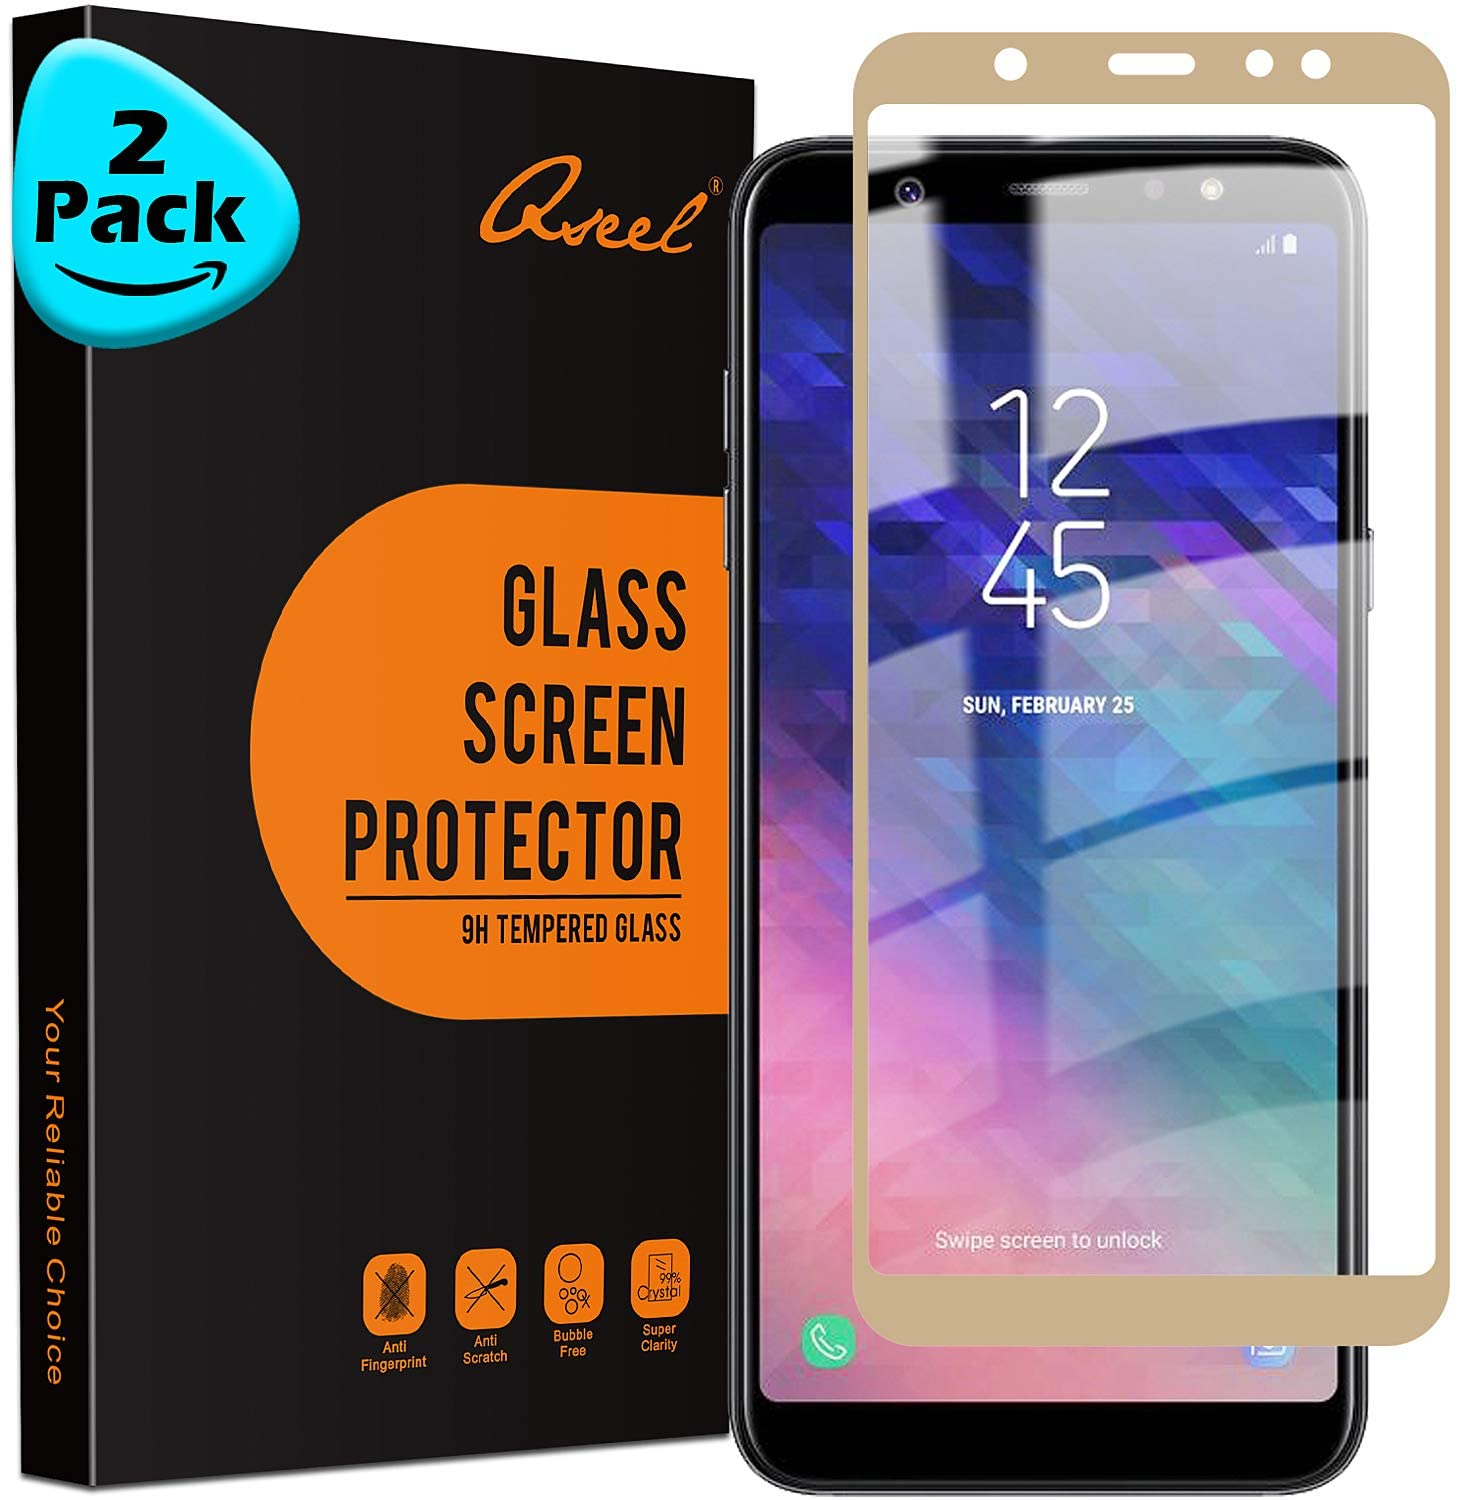 [2-Pack] QSEEL for Samsung Galaxy A6 Plus -2018 Tempered Glass Screen Protector, 9H Anti-Scratch Screen Guard Film with Arc Edge & Oleophobic Coating, 3D Touch Compatible, Golden Edge